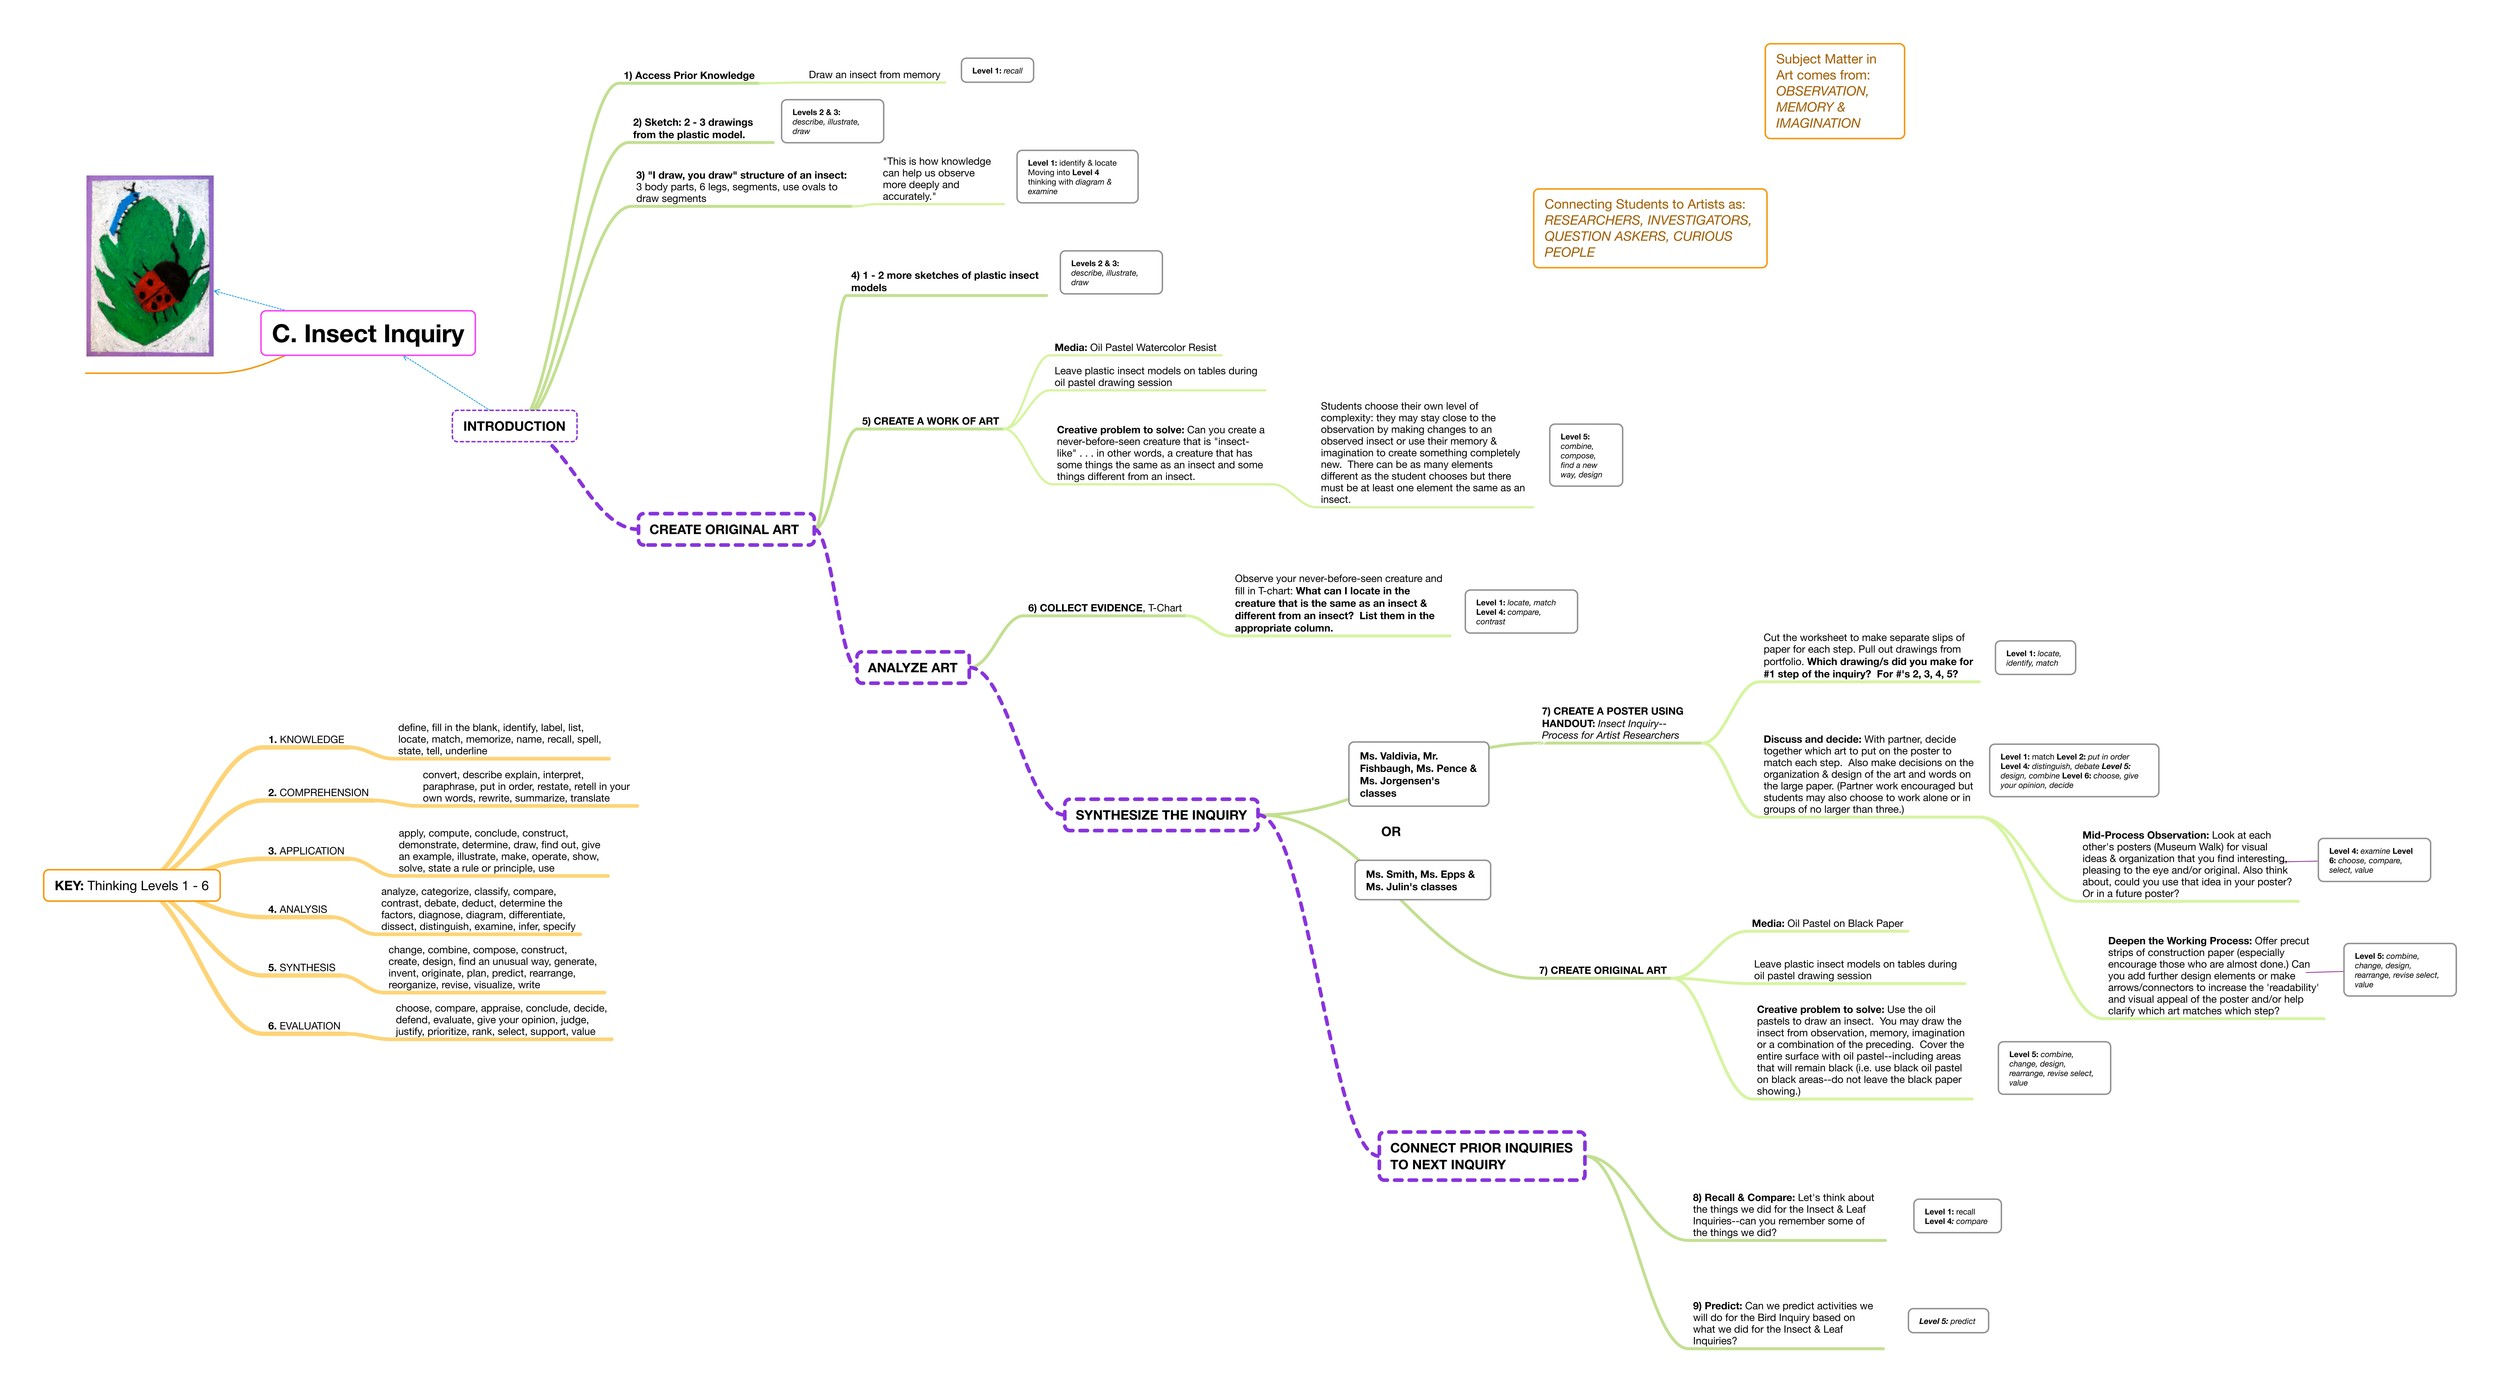 Map of the Insect Inquiry, click on image to view a larger pdf version.